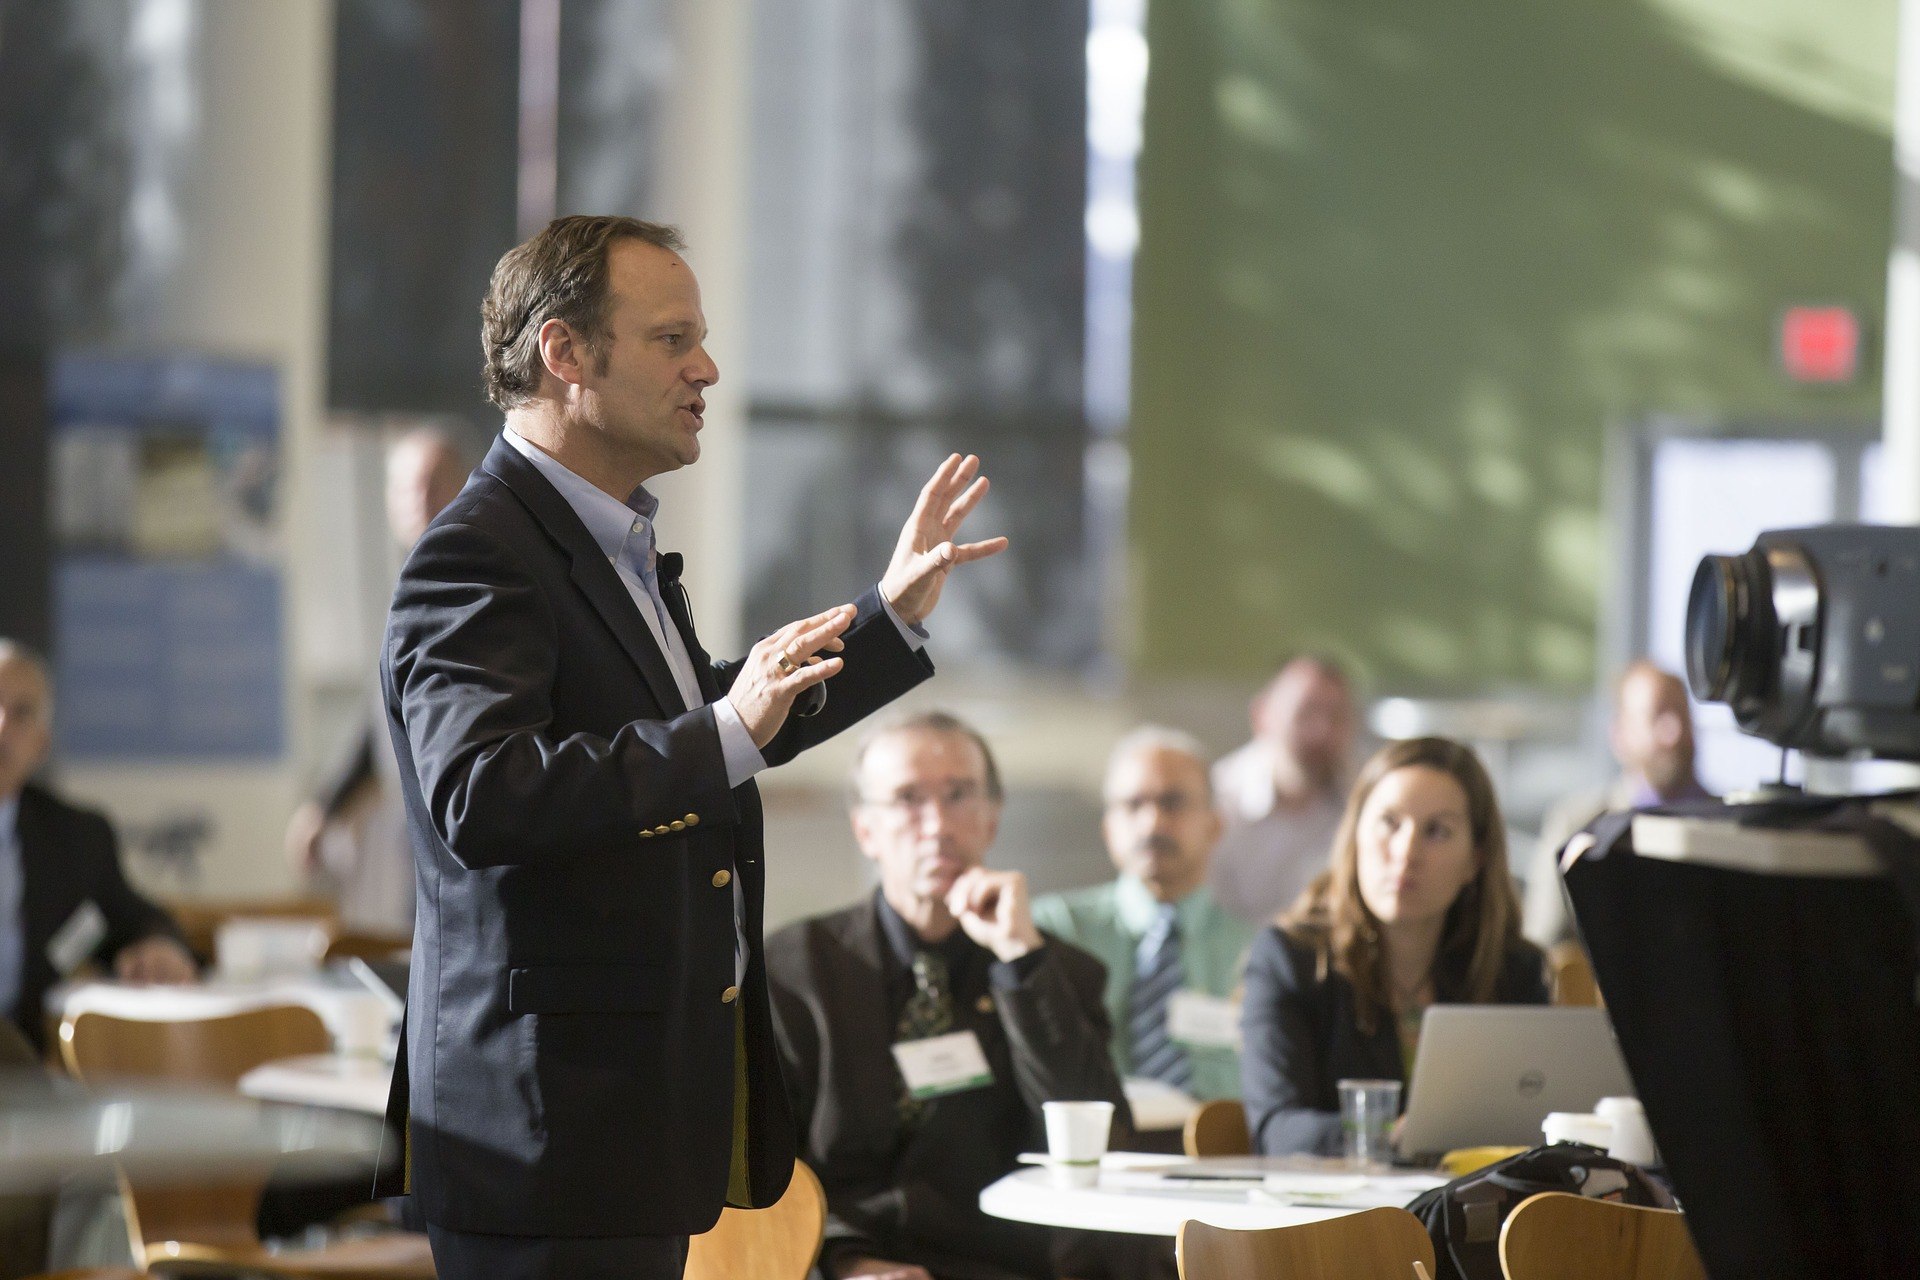 Public Speaking Dilemma: Why Don't They Respond?